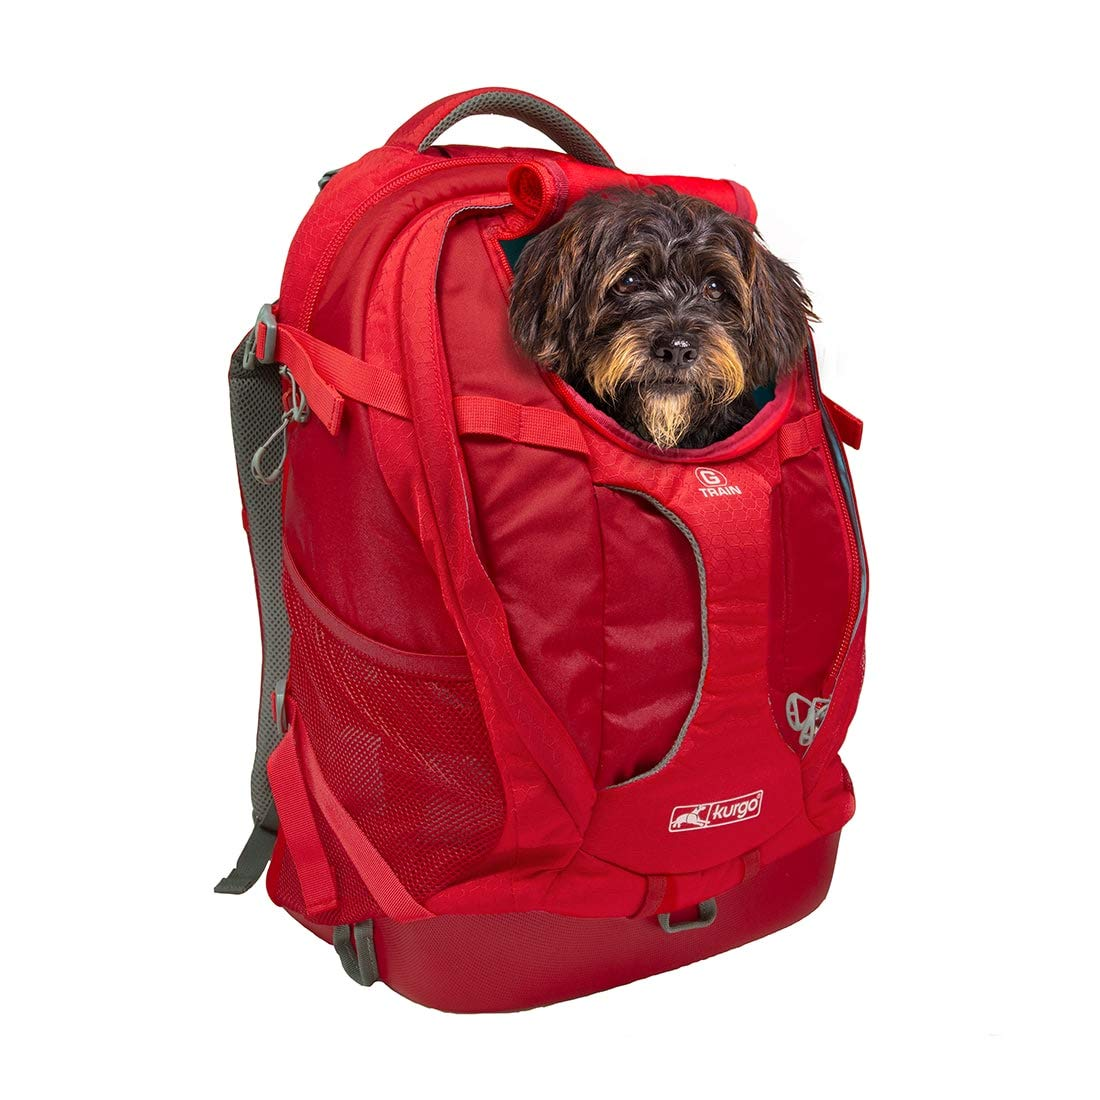 Kurgo Dog Carrier Backpack for Small Pets - Dogs & Cats | TSA Airline Approved | Cat | Hiking or Travel | Waterproof Bottom | G-Train | K9 Ruck Sack | Red | Grey